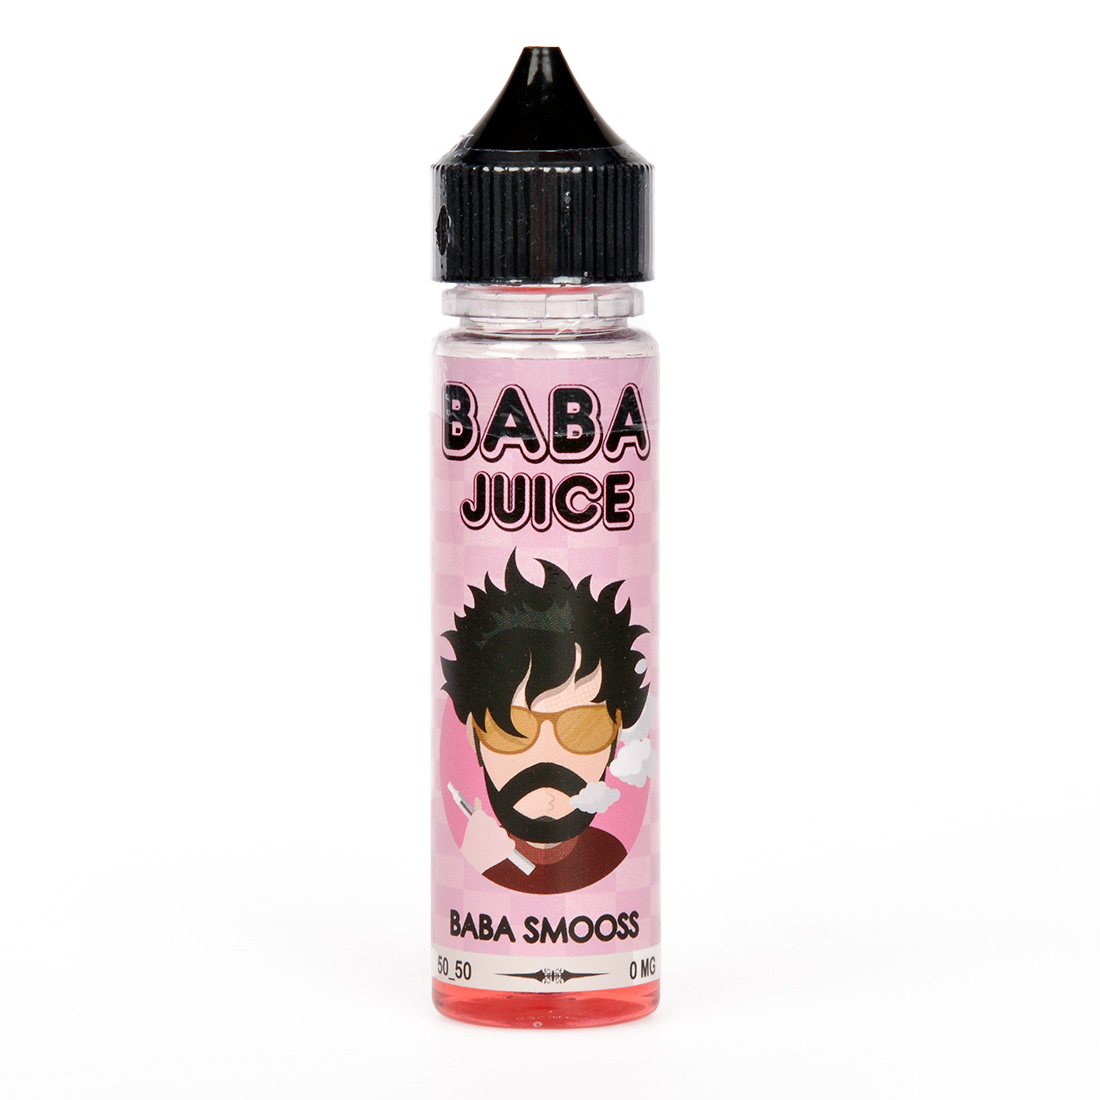 baba juices